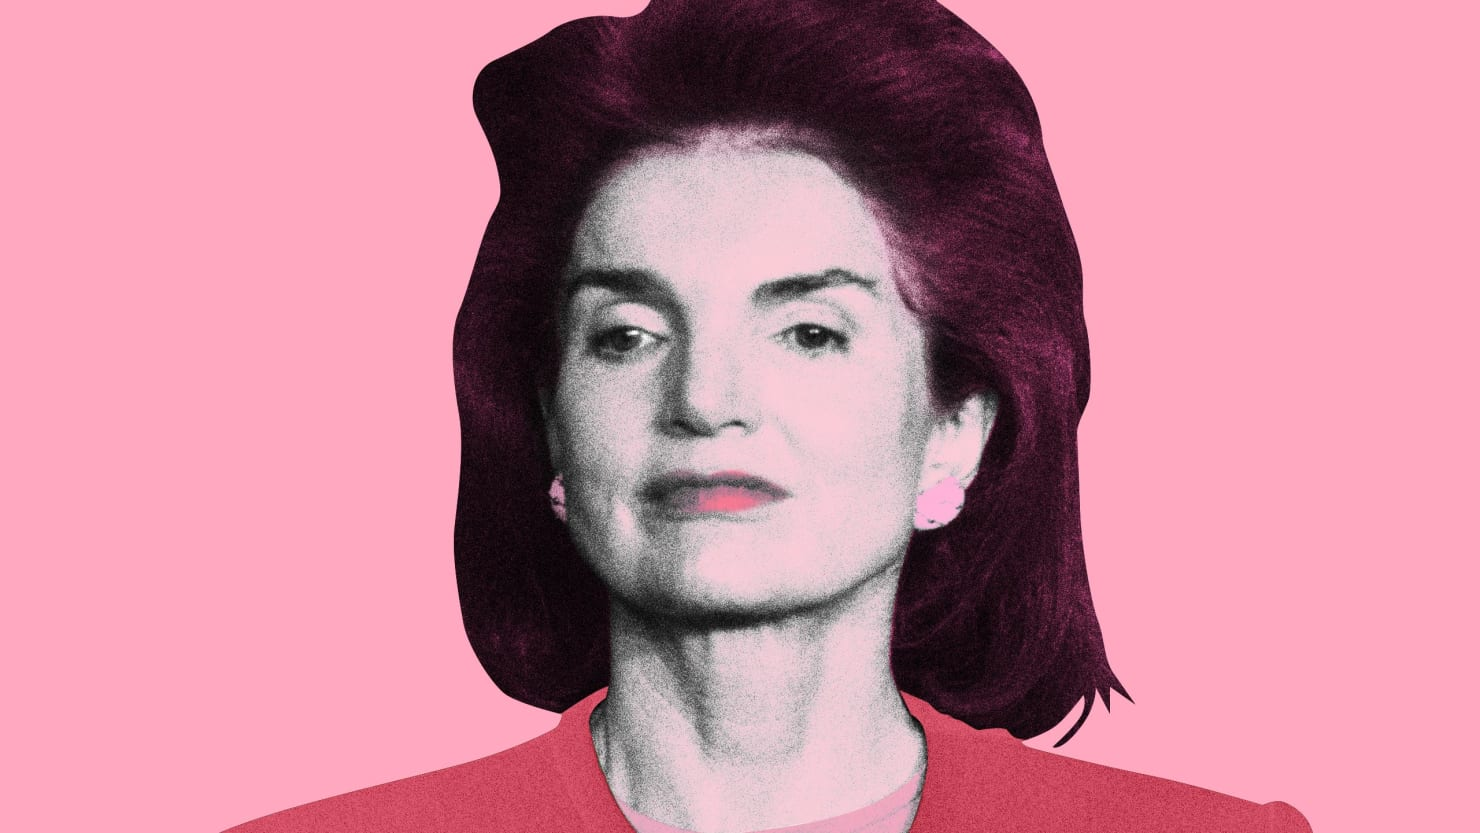 ... in the '80s and '90s, Daily Beast founder Tina Brown confided some of  her best dish to her now published diary, including this gem about Jackie  Kennedy.